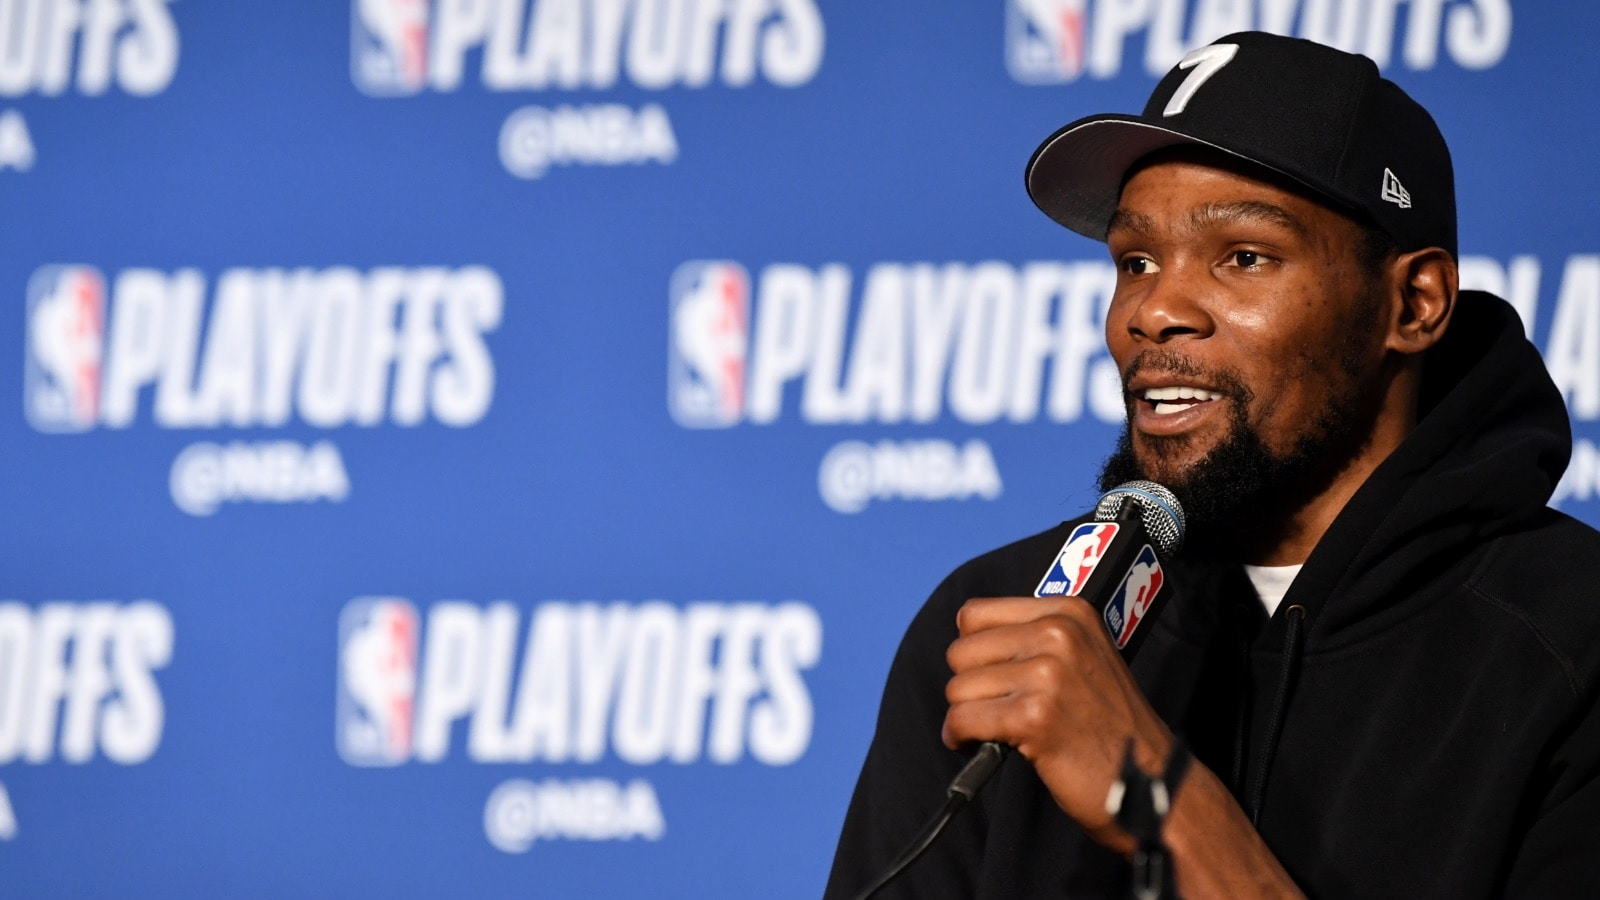 Kevin Durant speaks to the media following a playoff game